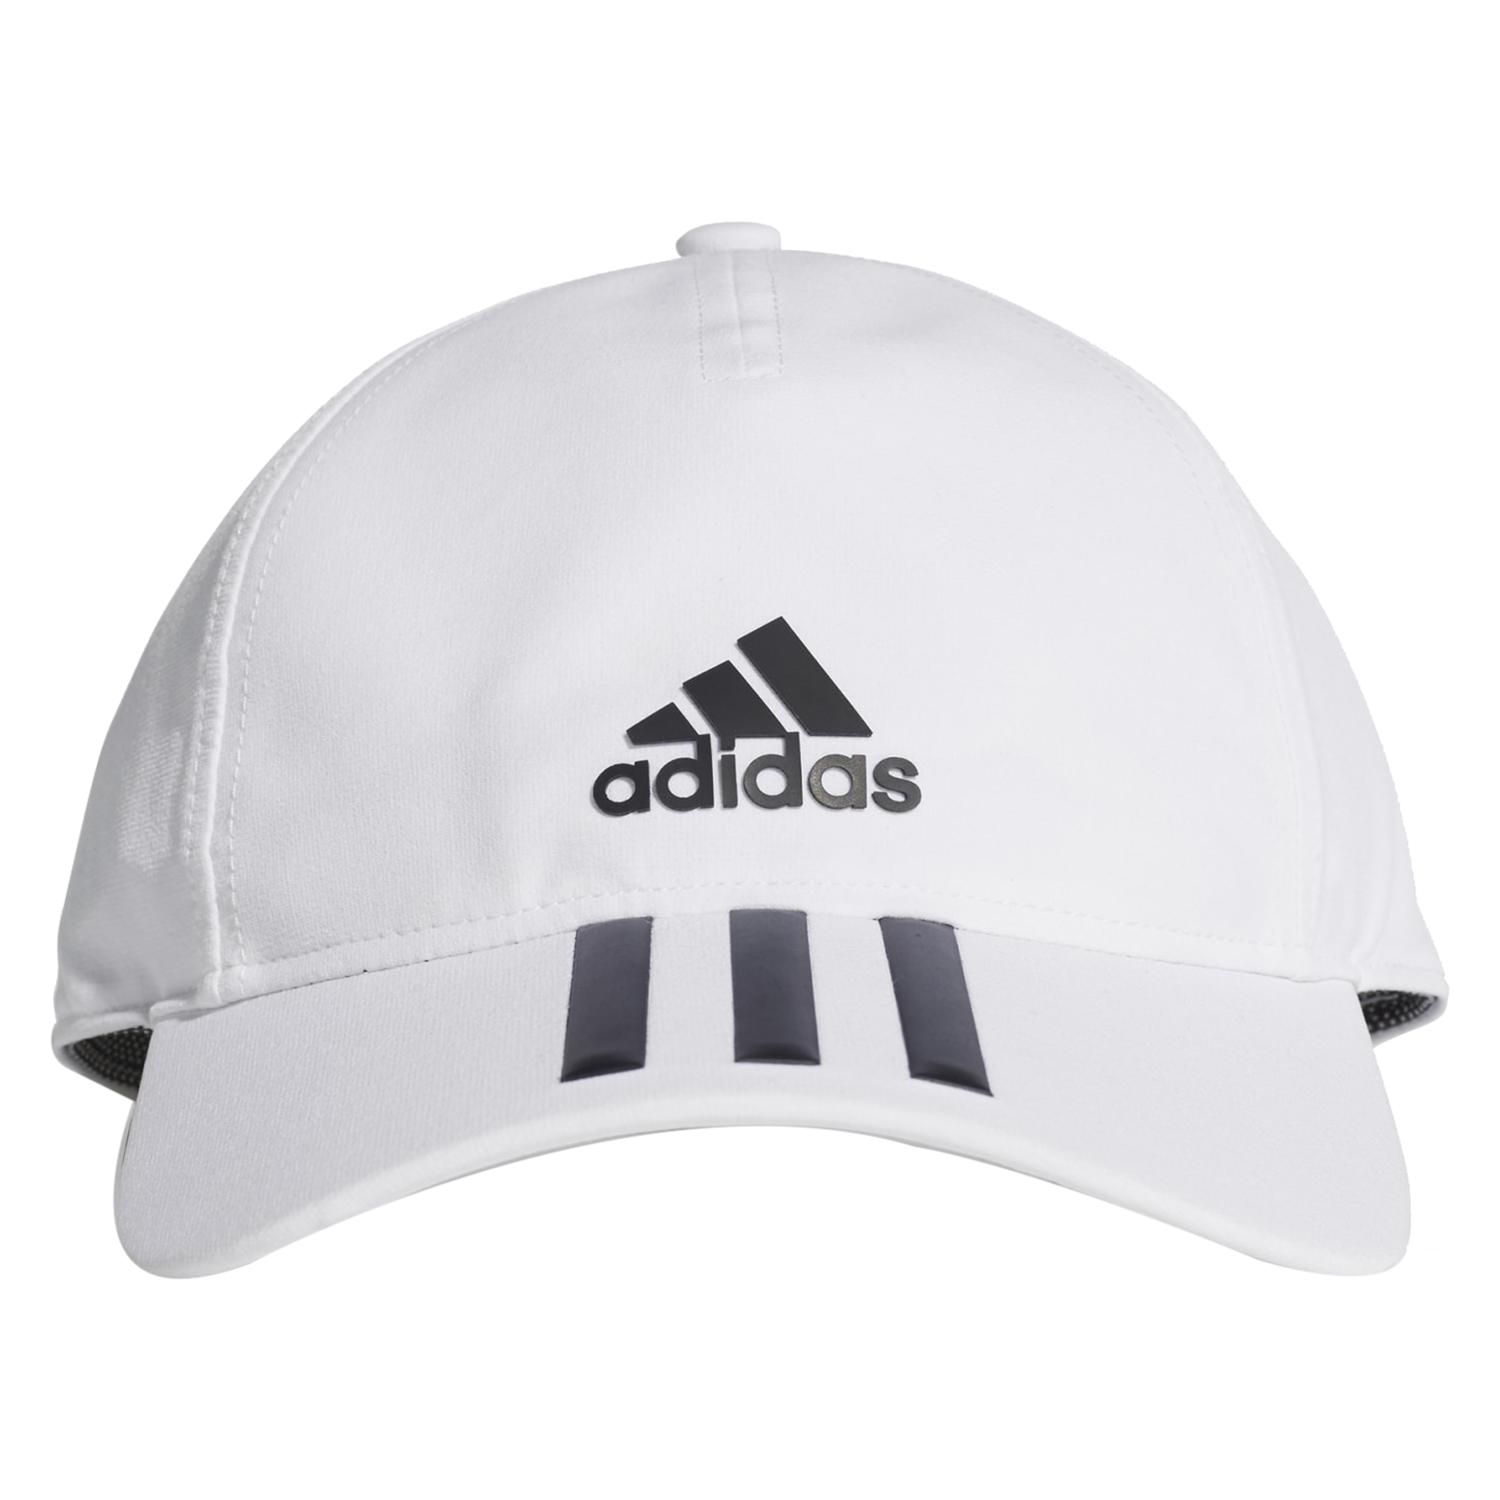 adidas C40 3-Stripes Climalite Cap in White - Intersport Australia 08a54800f07